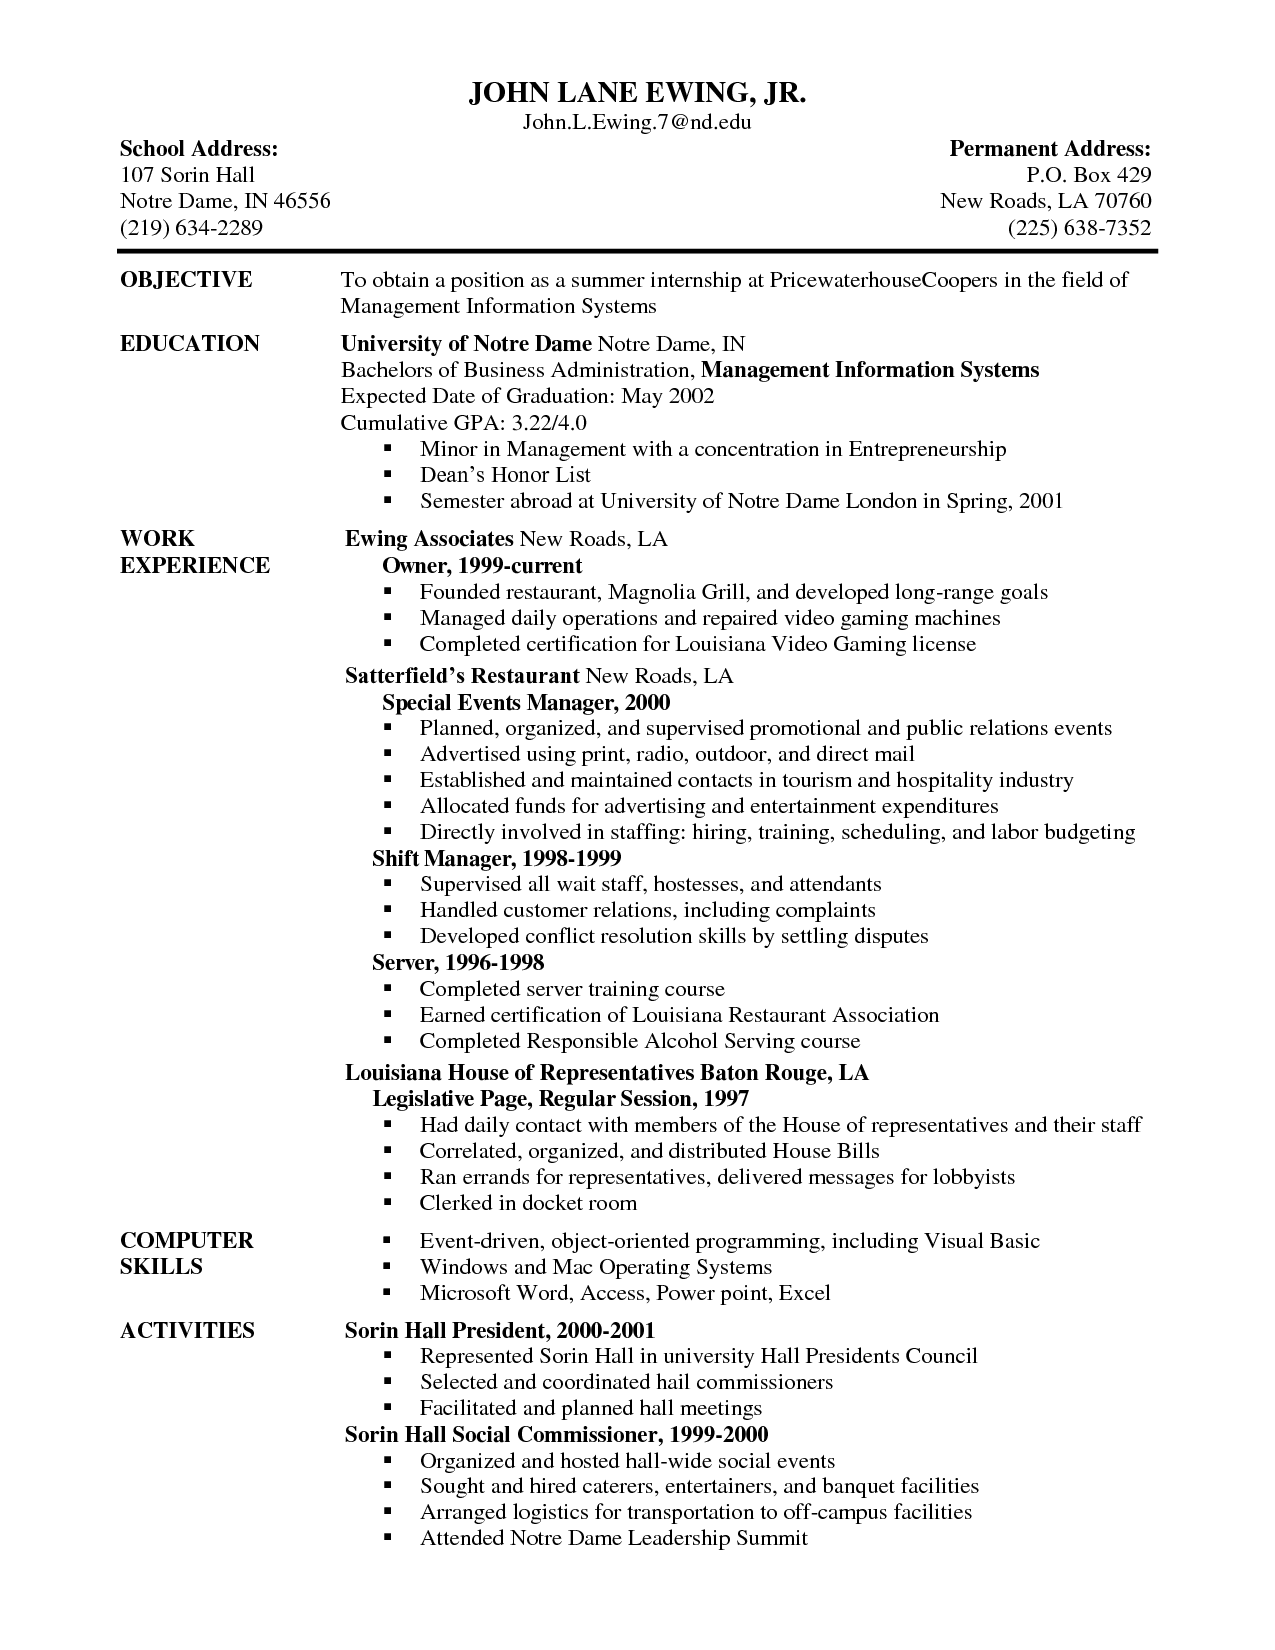 Resume Examples Skills Fascinating Server Resume Skills Template Doc Serving Job Examples Description Inspiration Design